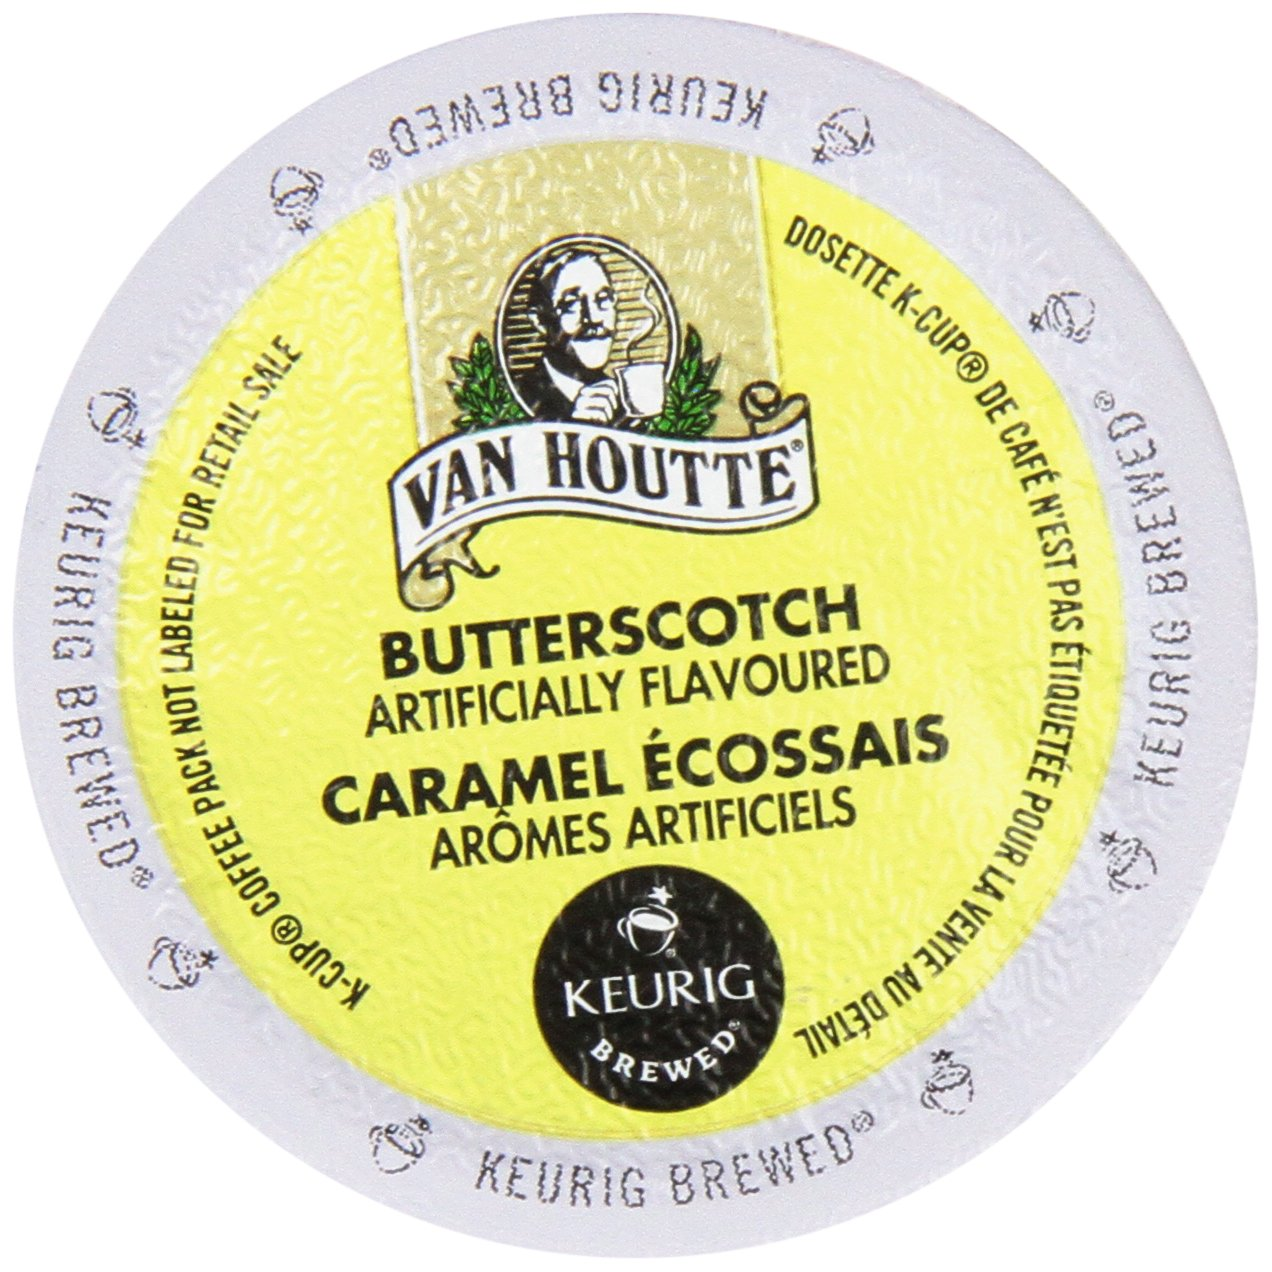 Van Houtte FLAVORED Coffee * BUTTERSCOTCH Caramel * Light Roast - includes 24 K-Cups for Keurig Brewers